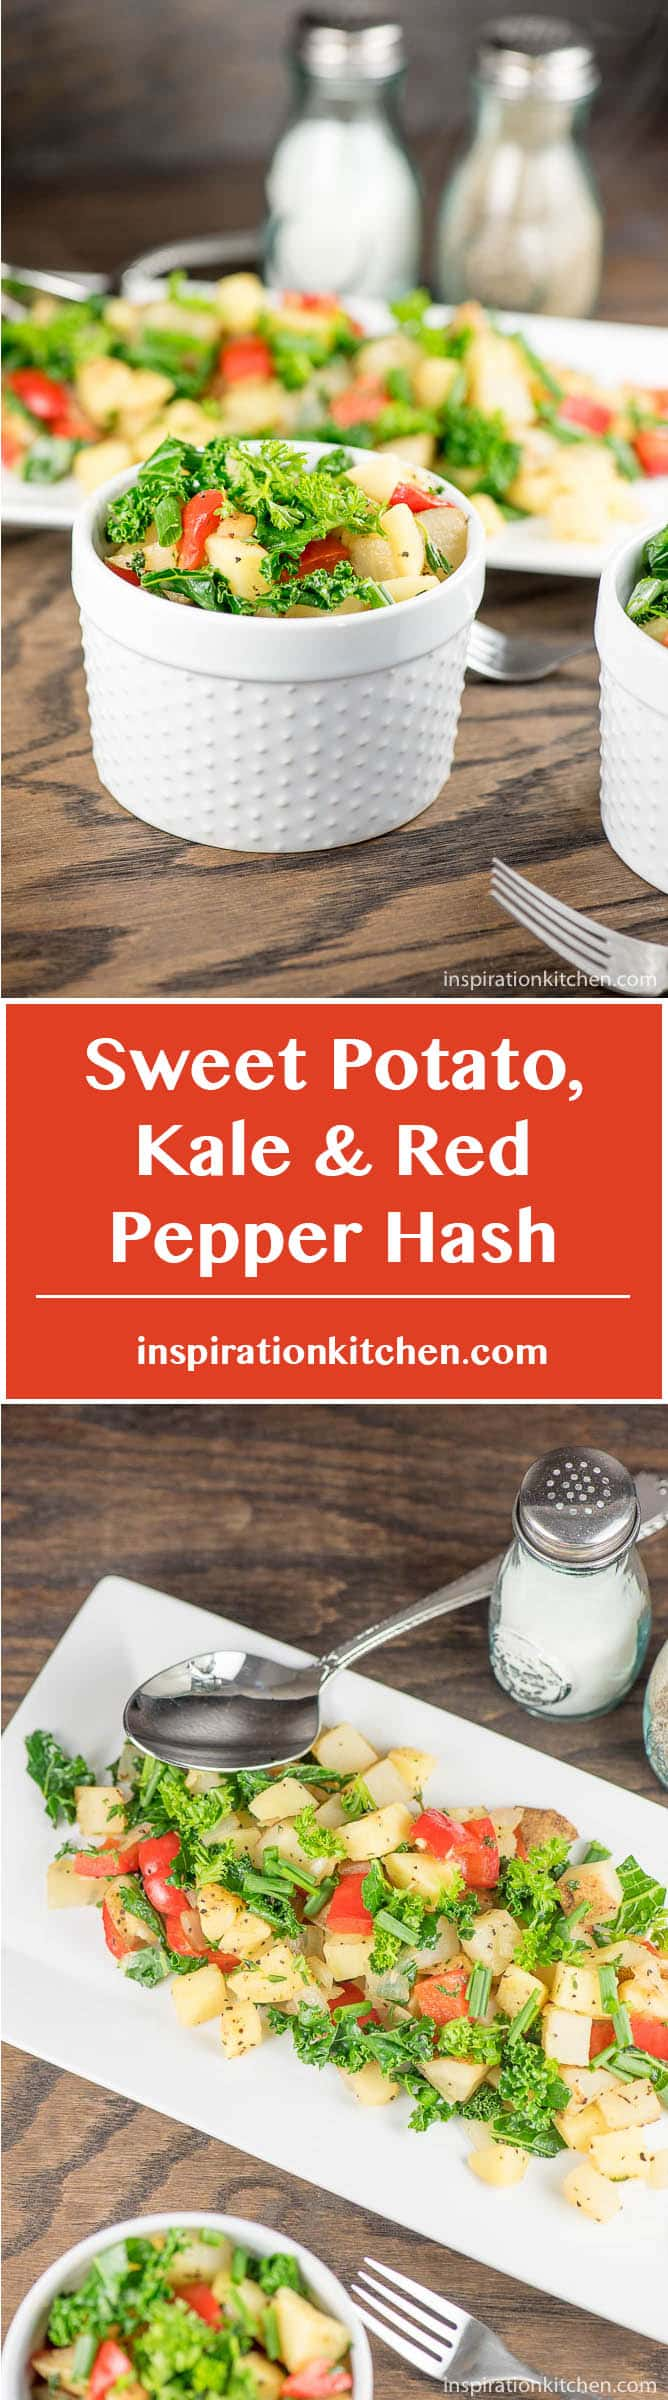 Sweet Potato, Kale & Red Pepper Hash - inspirationkitchen.com